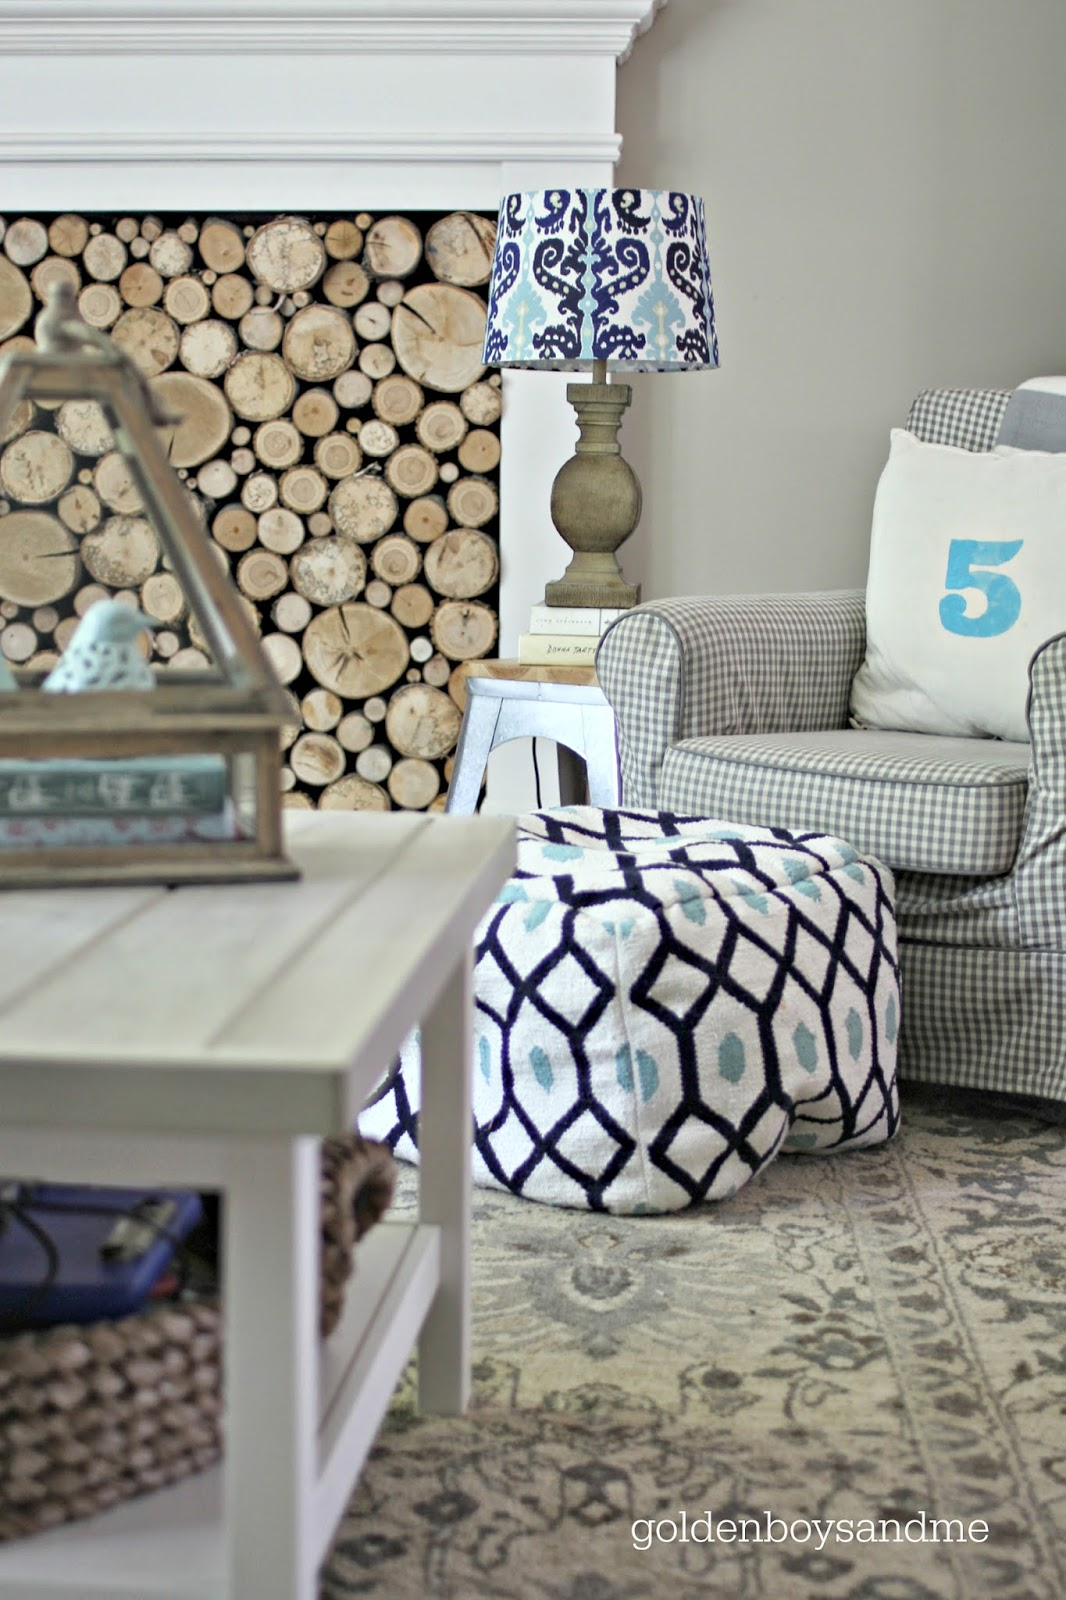 Target pouf, Ikea Jennylund chair, stenciled pillow, galvanized stool used as a side table